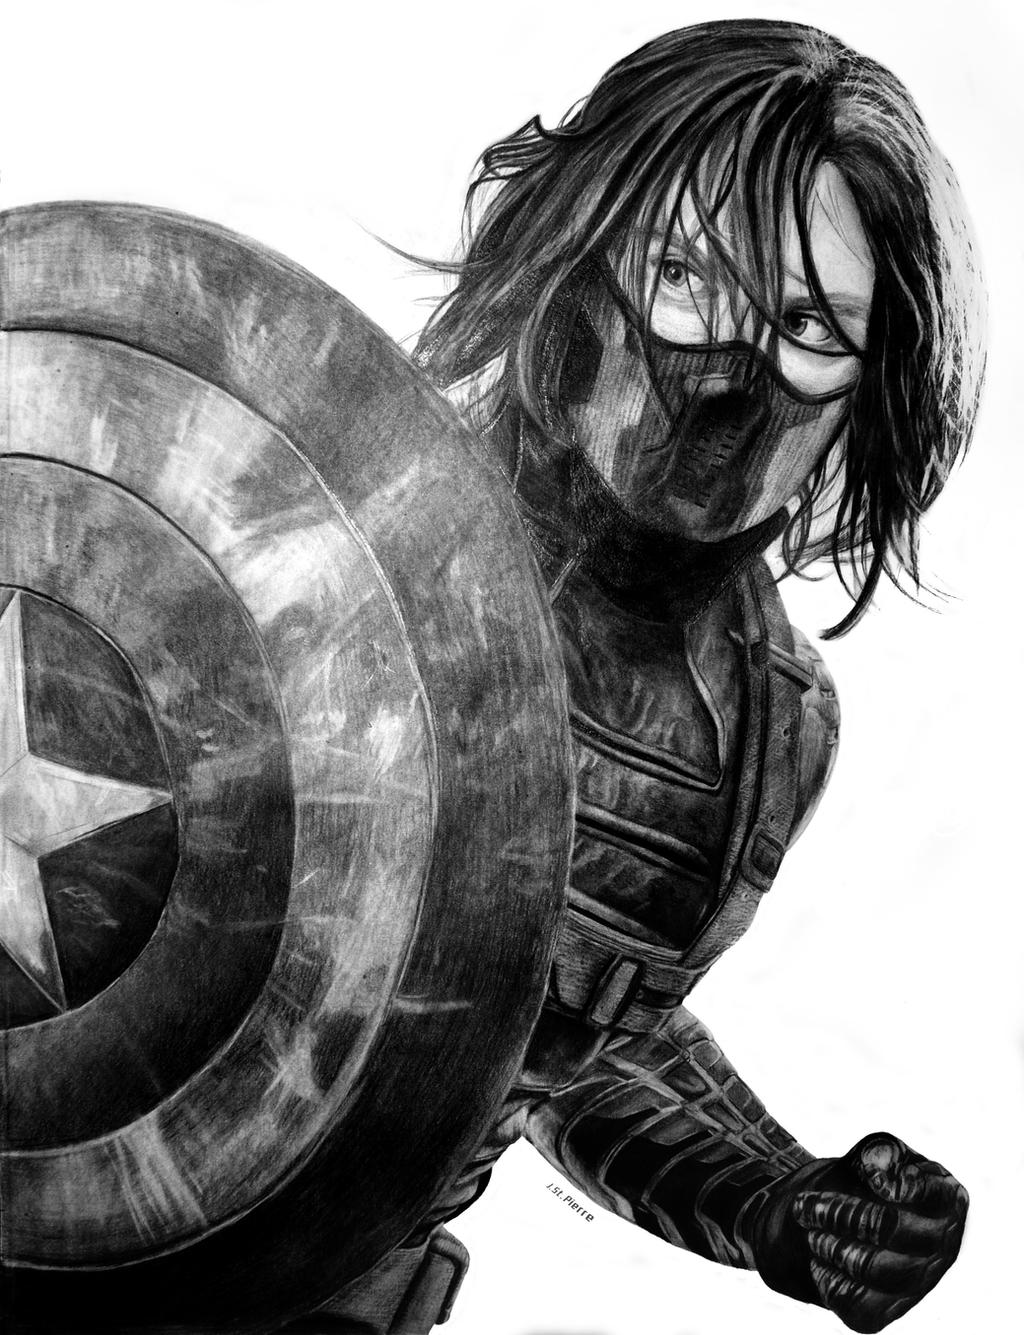 The Winter Soldier by Aquila7 on DeviantArt